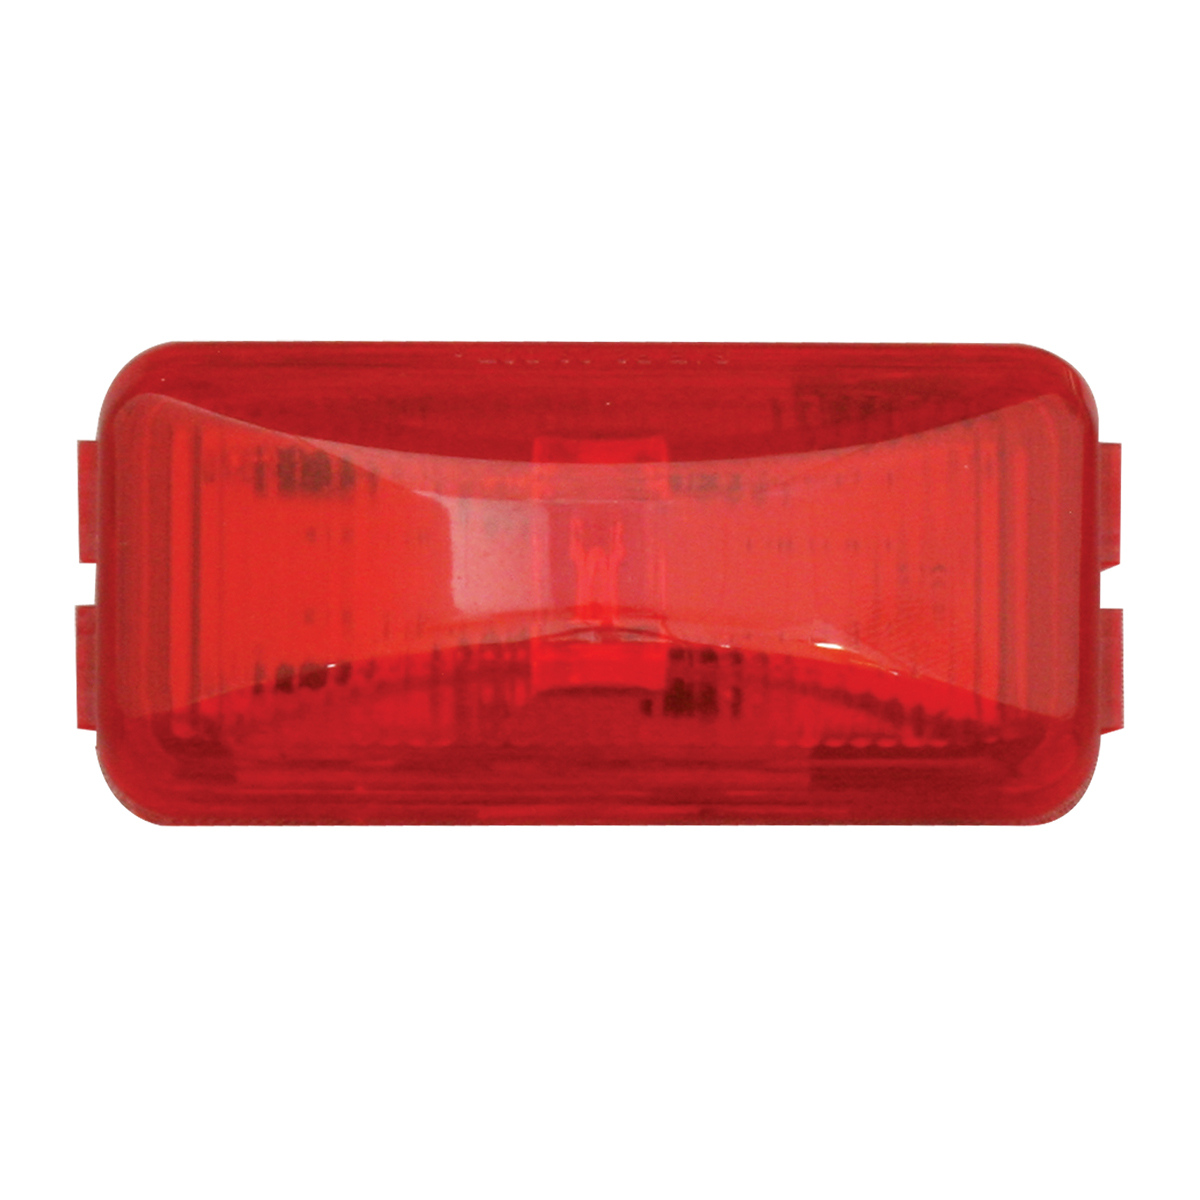 76412 Small Rect Fleet LED Light in Red/Red